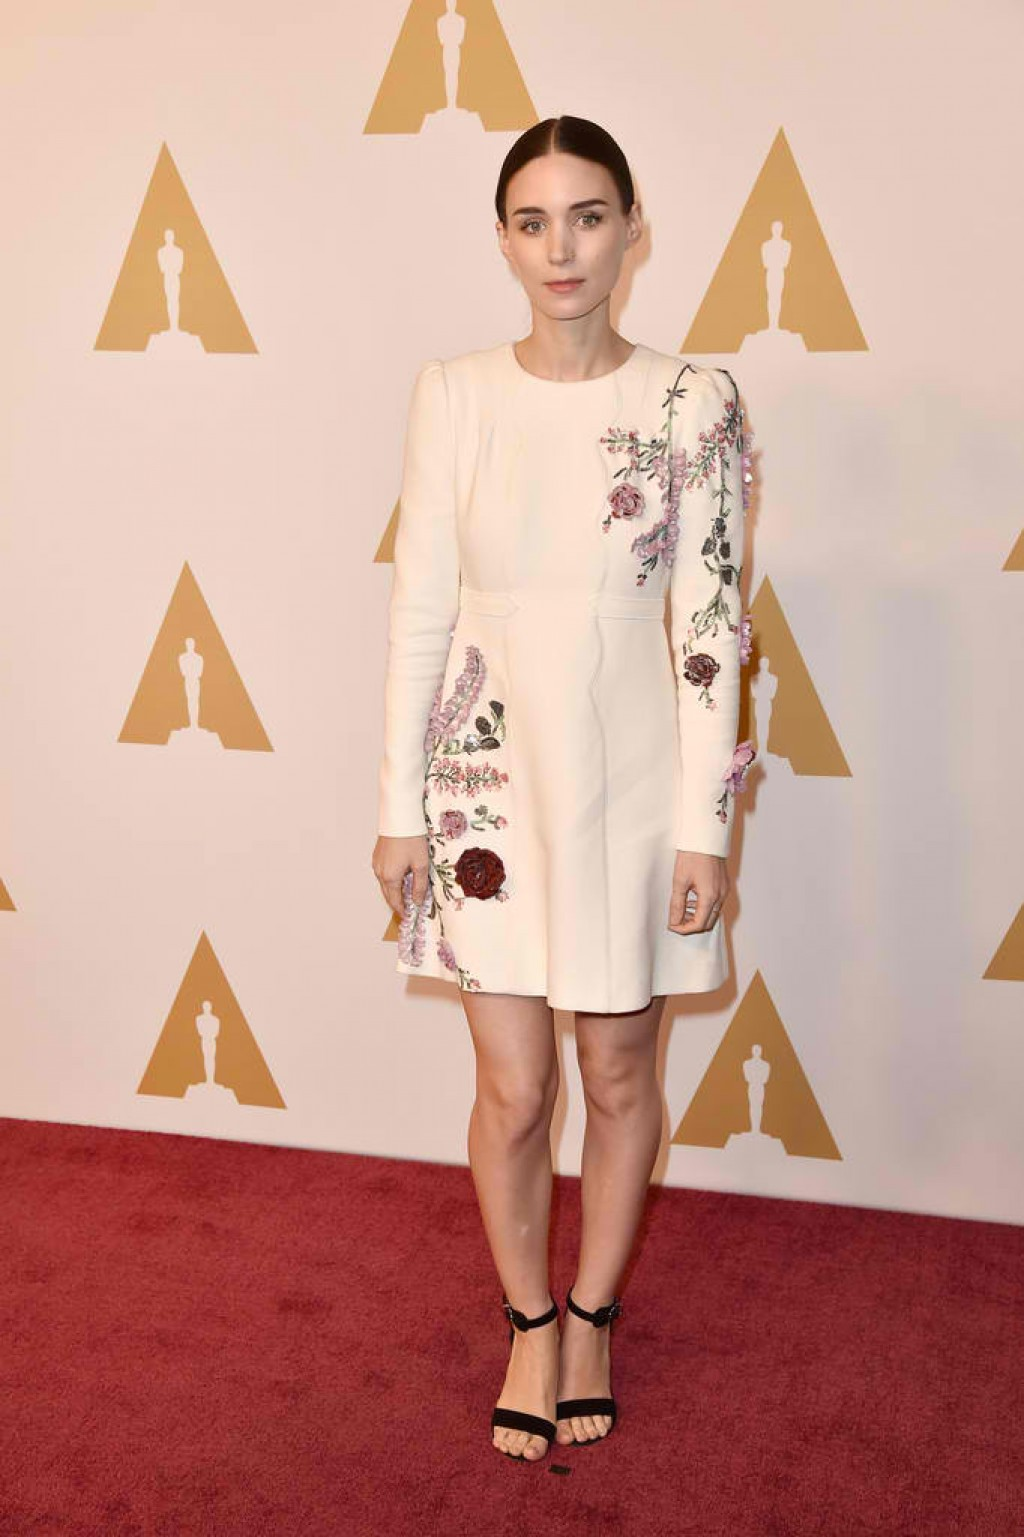 88th-Annual-Academy-Awards-Nominee-Luncheon-Rooney-Mara-Dress-2016-1024x1537